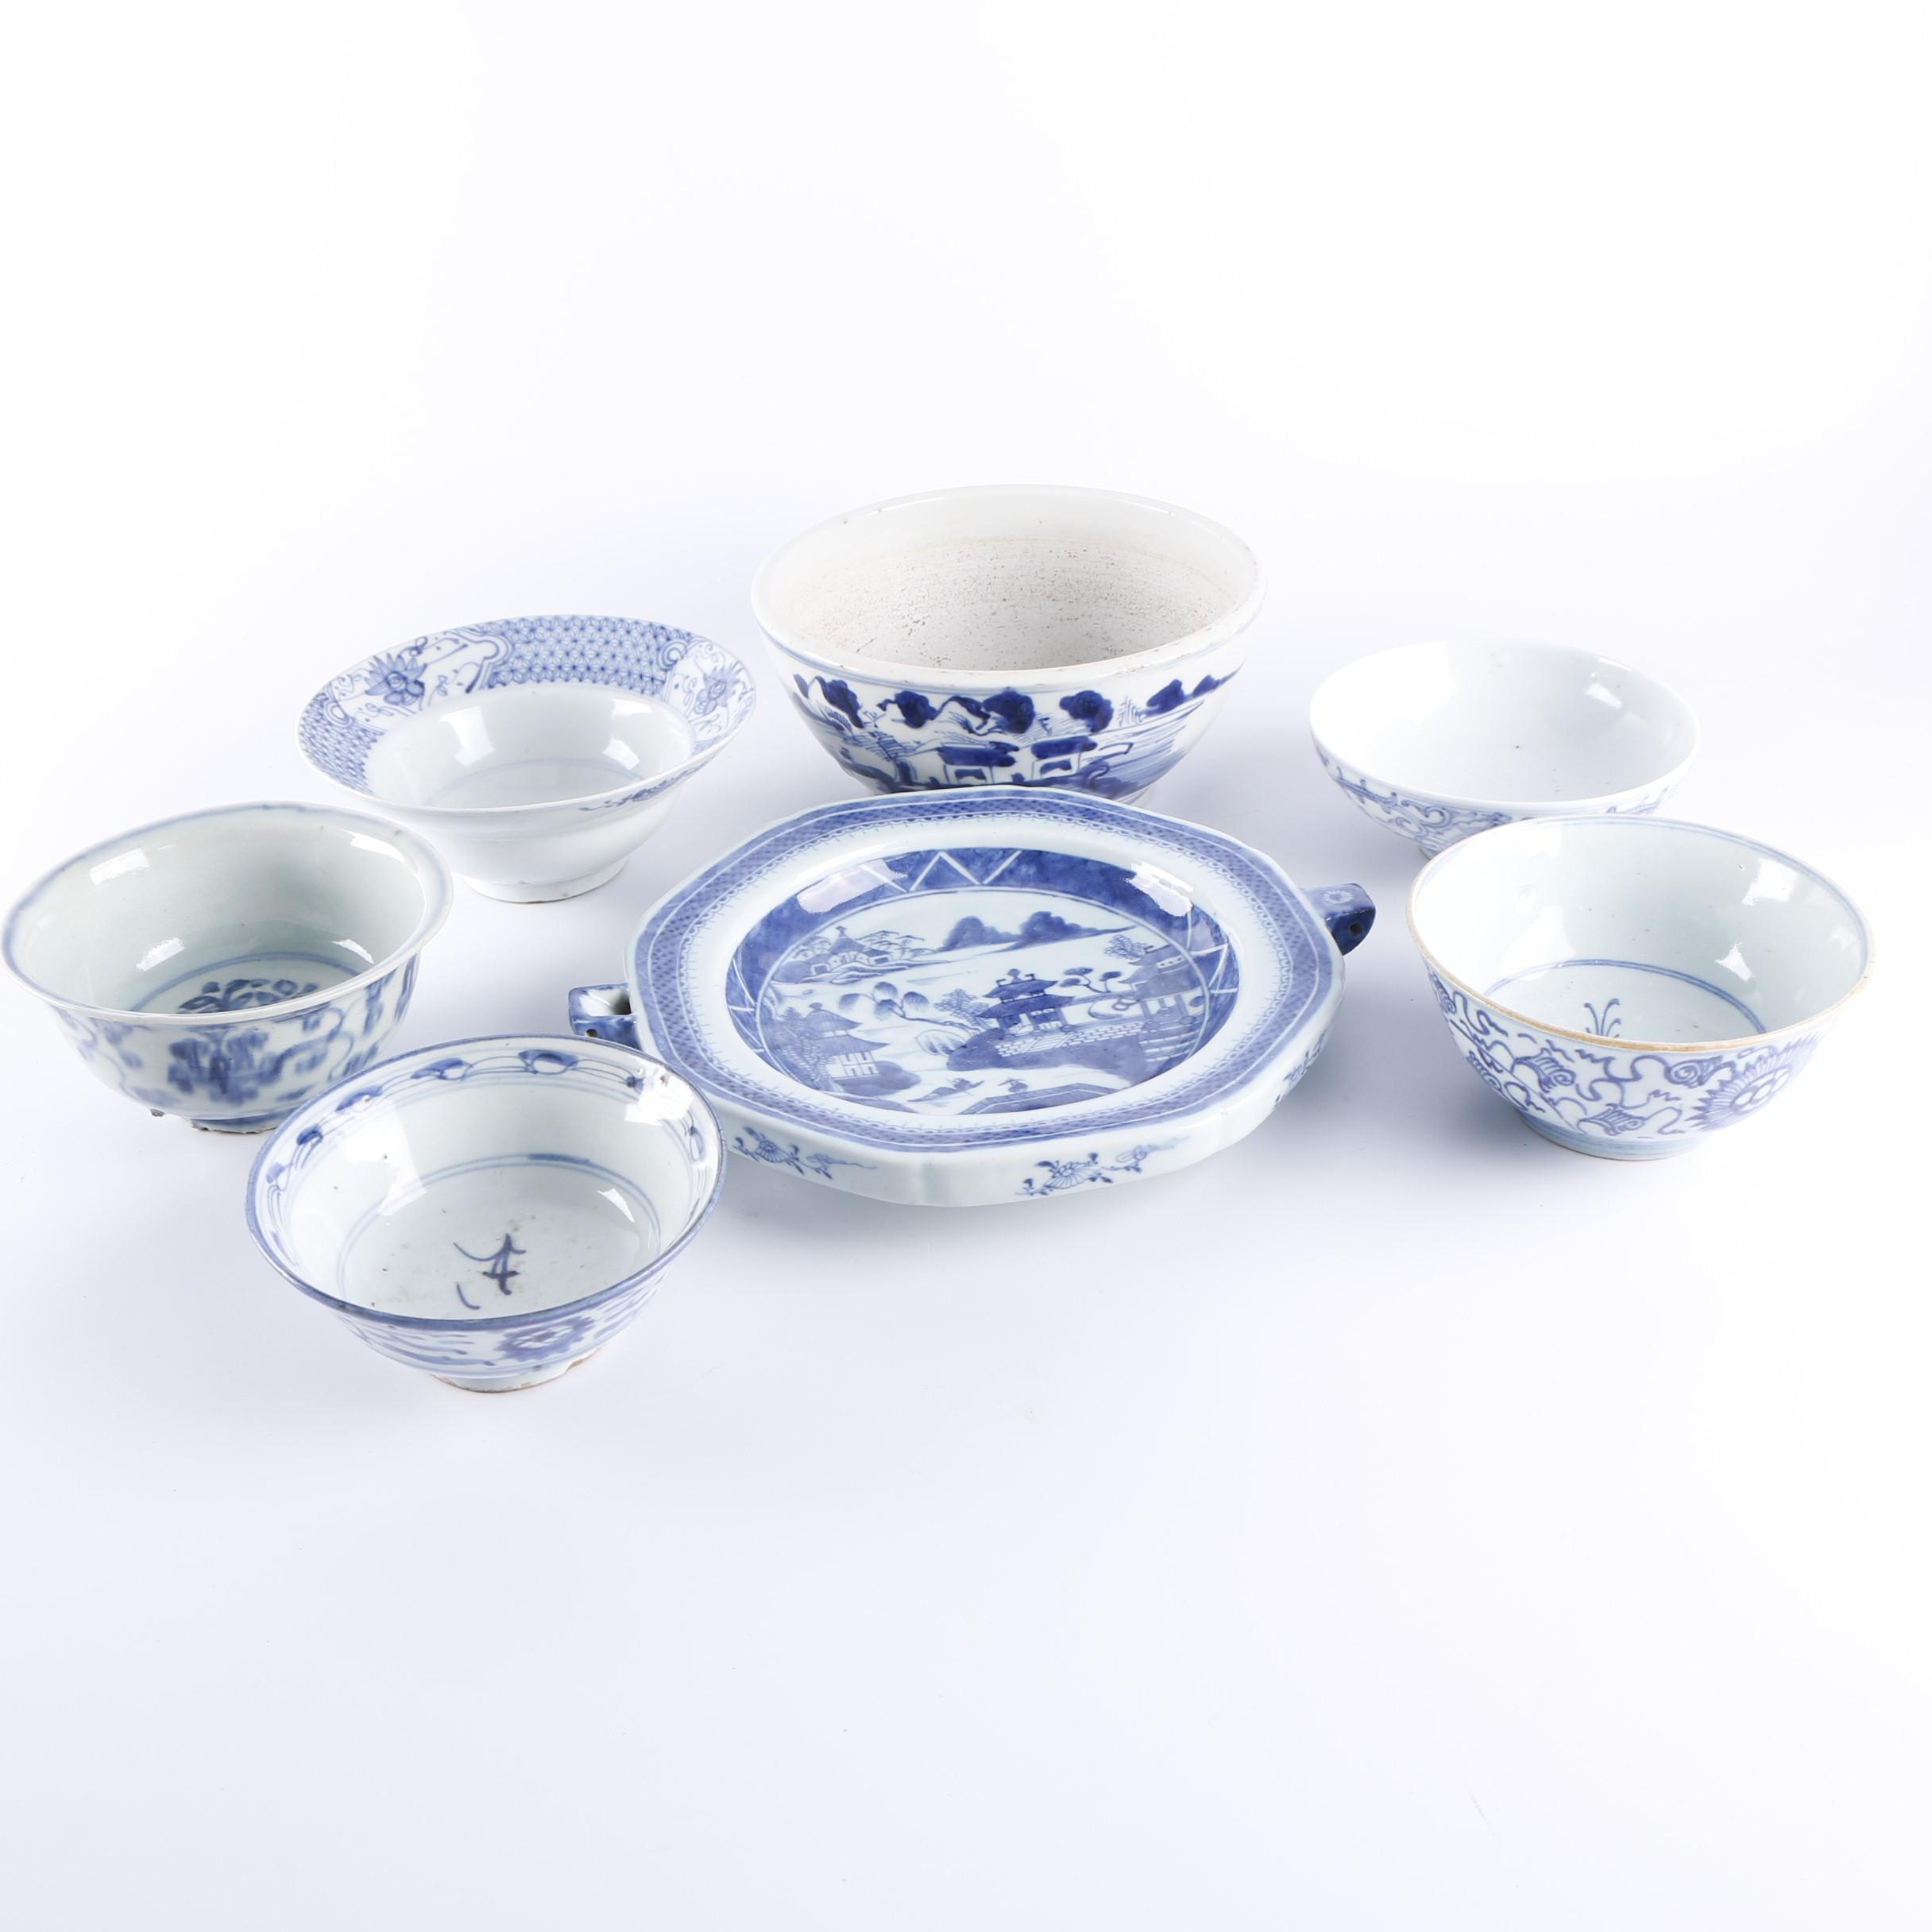 Chinese Blue and White Porcelain Bowls and Warming Dish